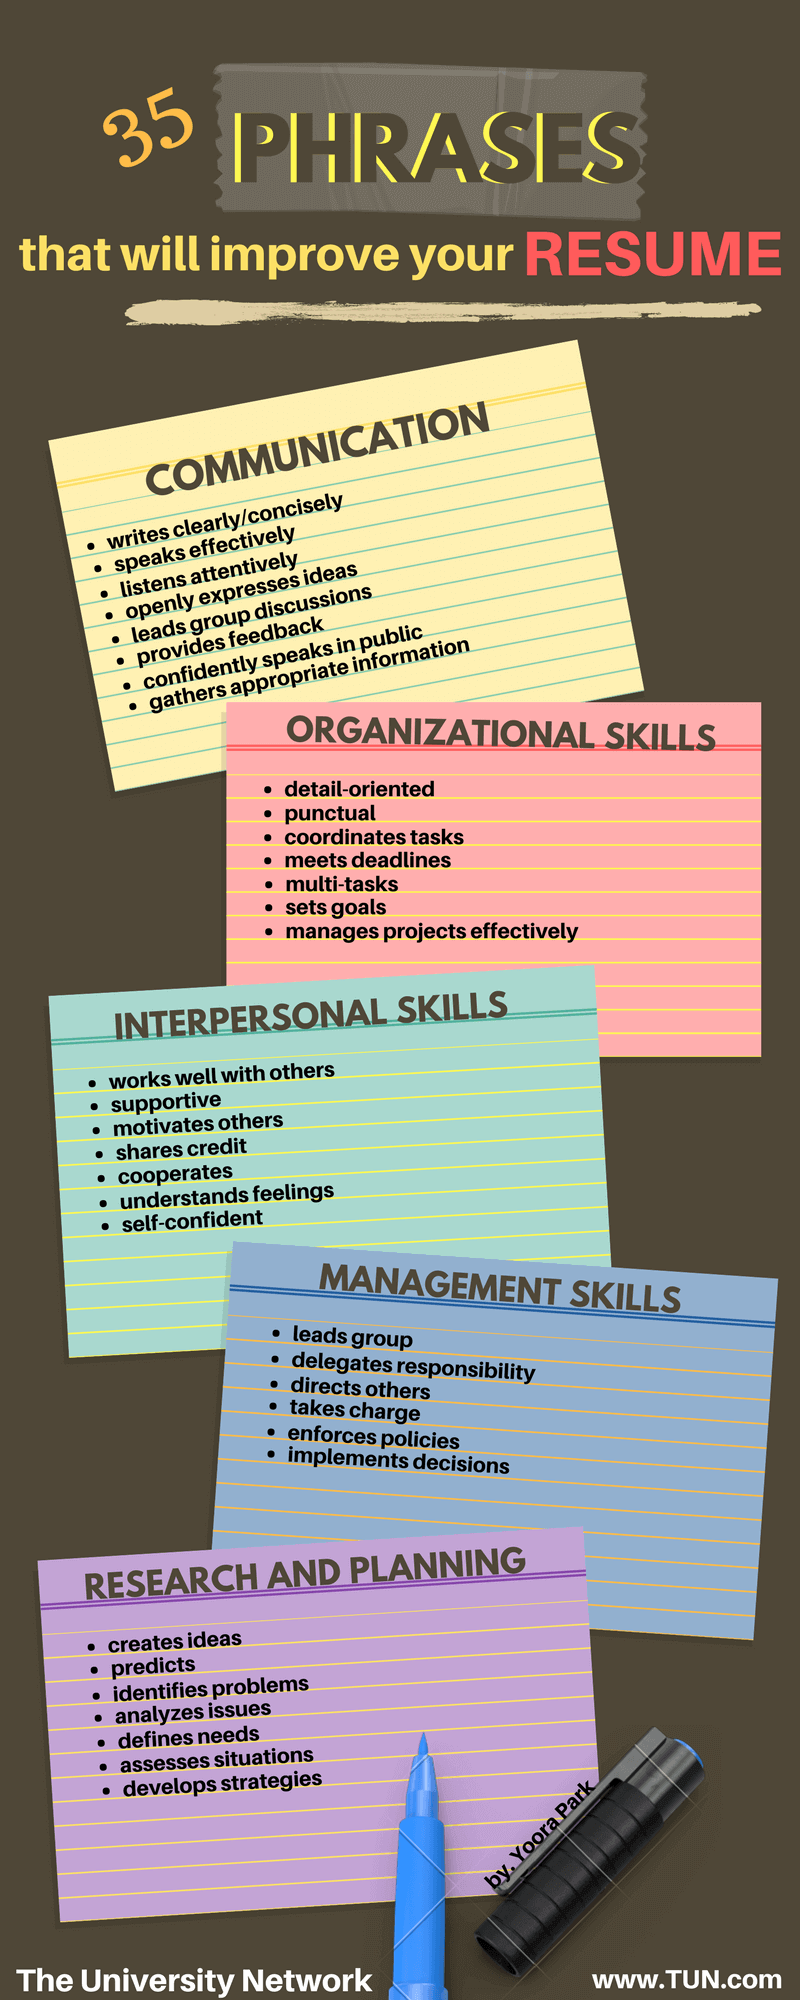 Teacher Transferable Skills Resume   work   Pinterest   Teacher     Teacher Transferable Skills Resume   work   Pinterest   Teacher  Business  and Resume help